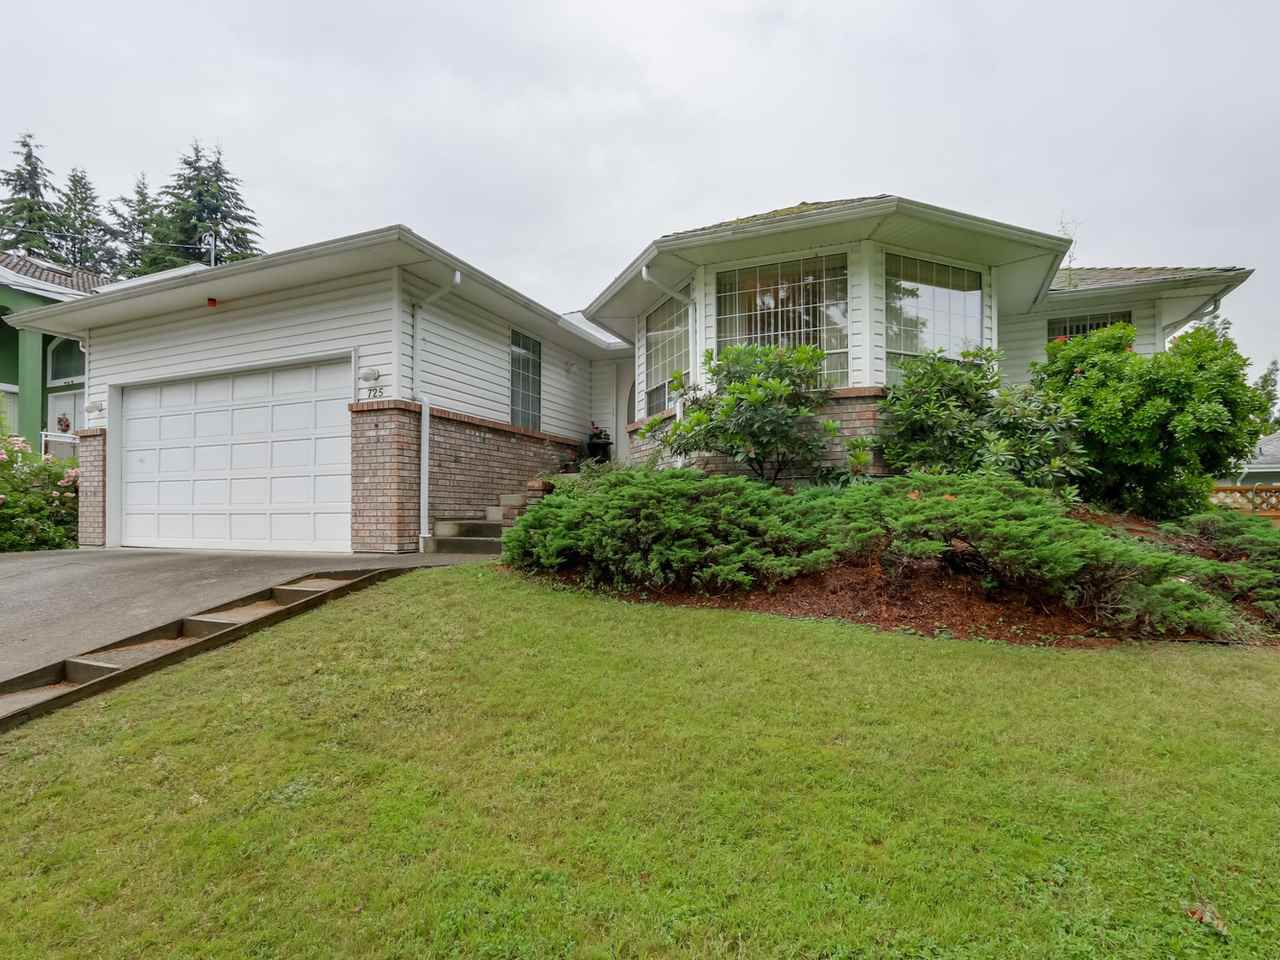 Main Photo: 725 ROBINSON Street in Coquitlam: Coquitlam West House for sale : MLS®# R2080474